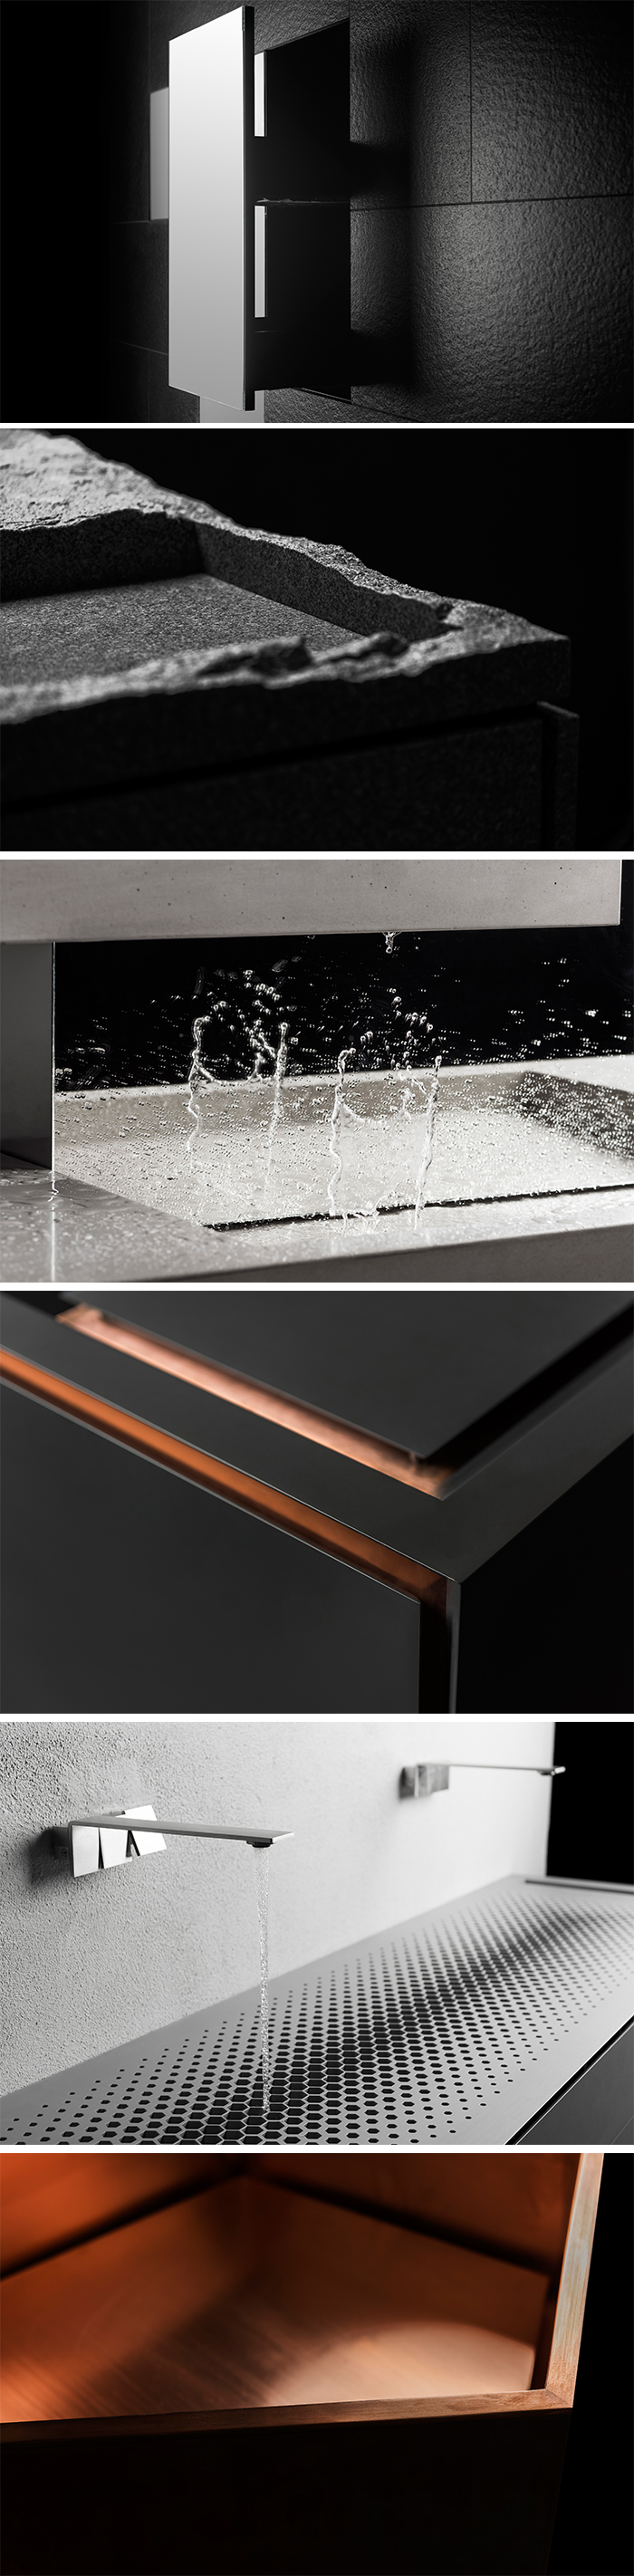 INITI are changing the world of bathrooms. Which INITI product is your favorite?